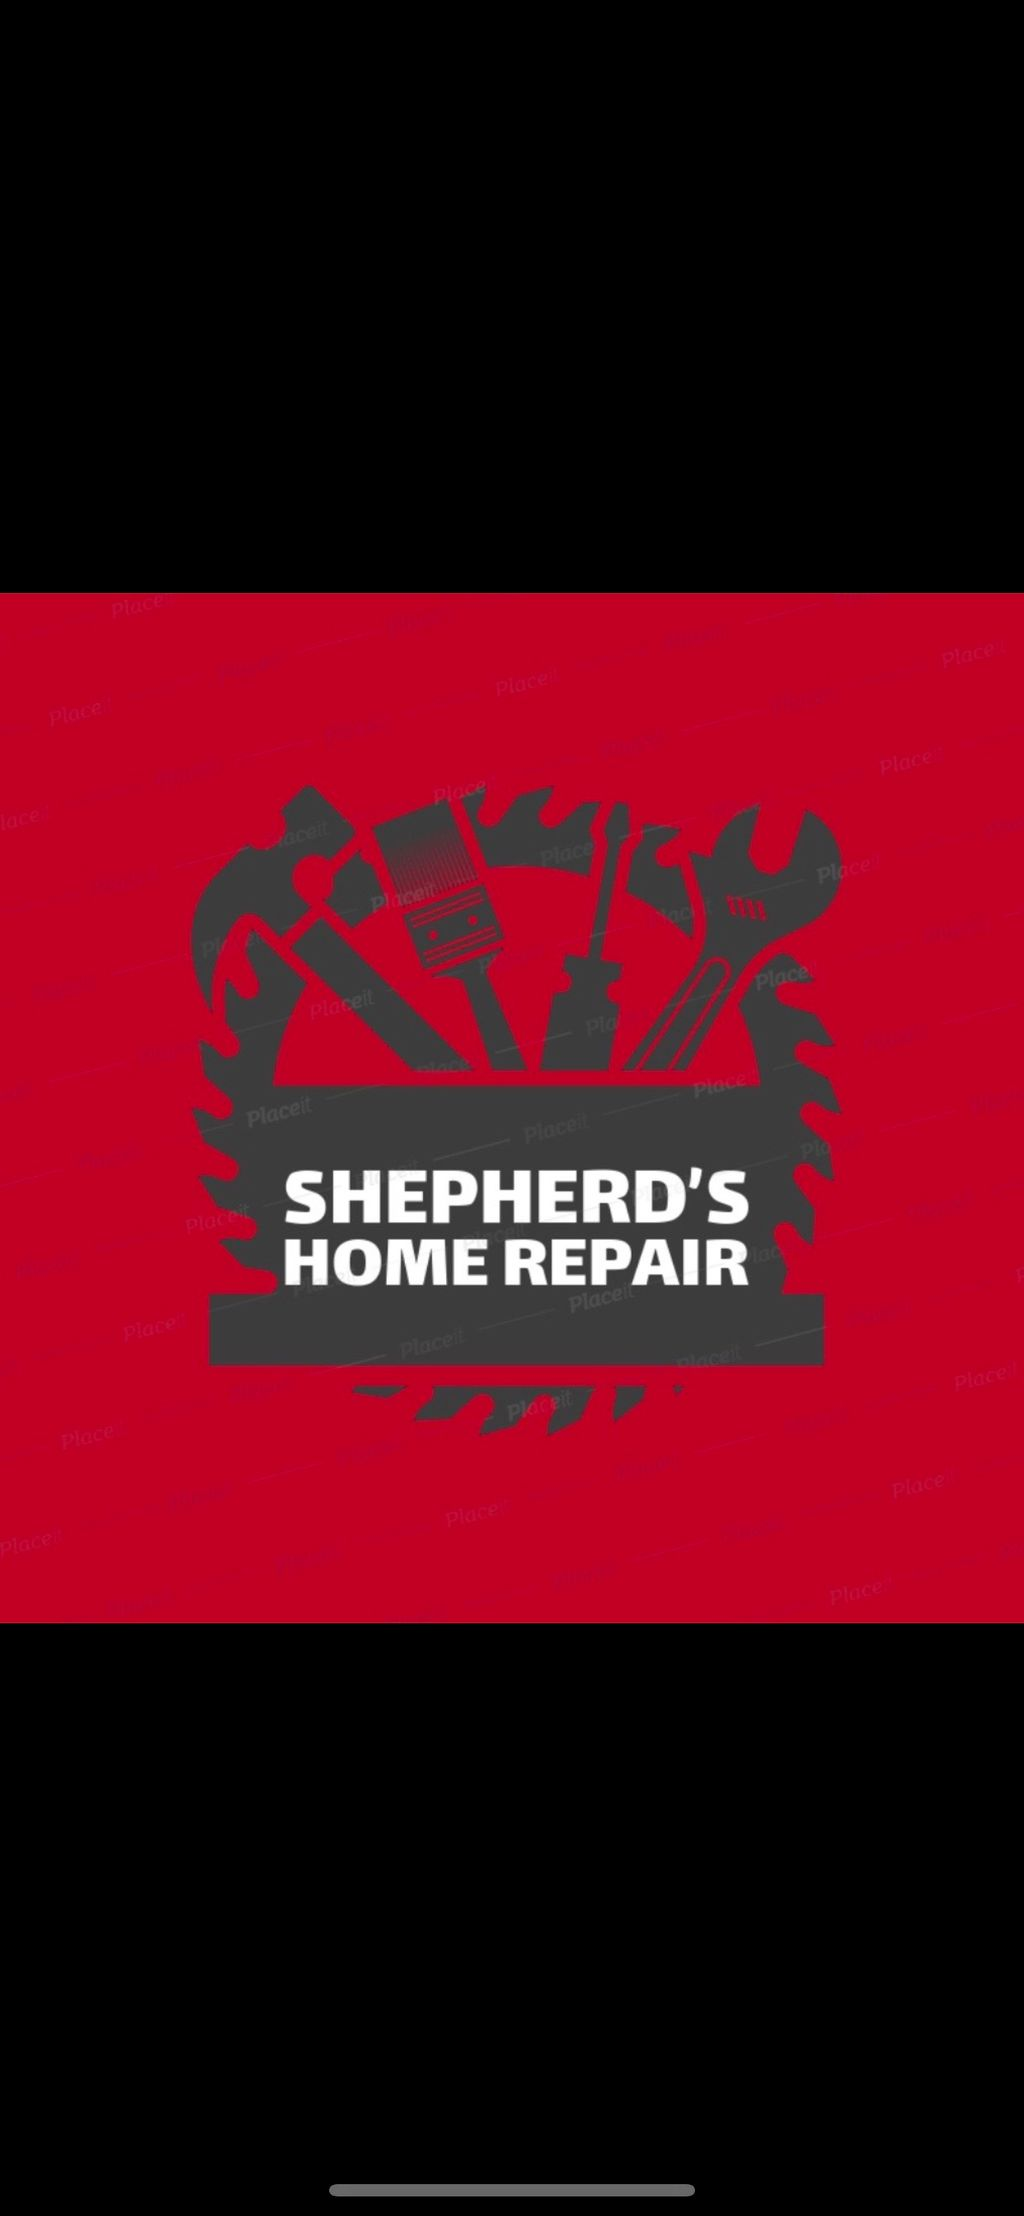 Shepherd's Home Repair